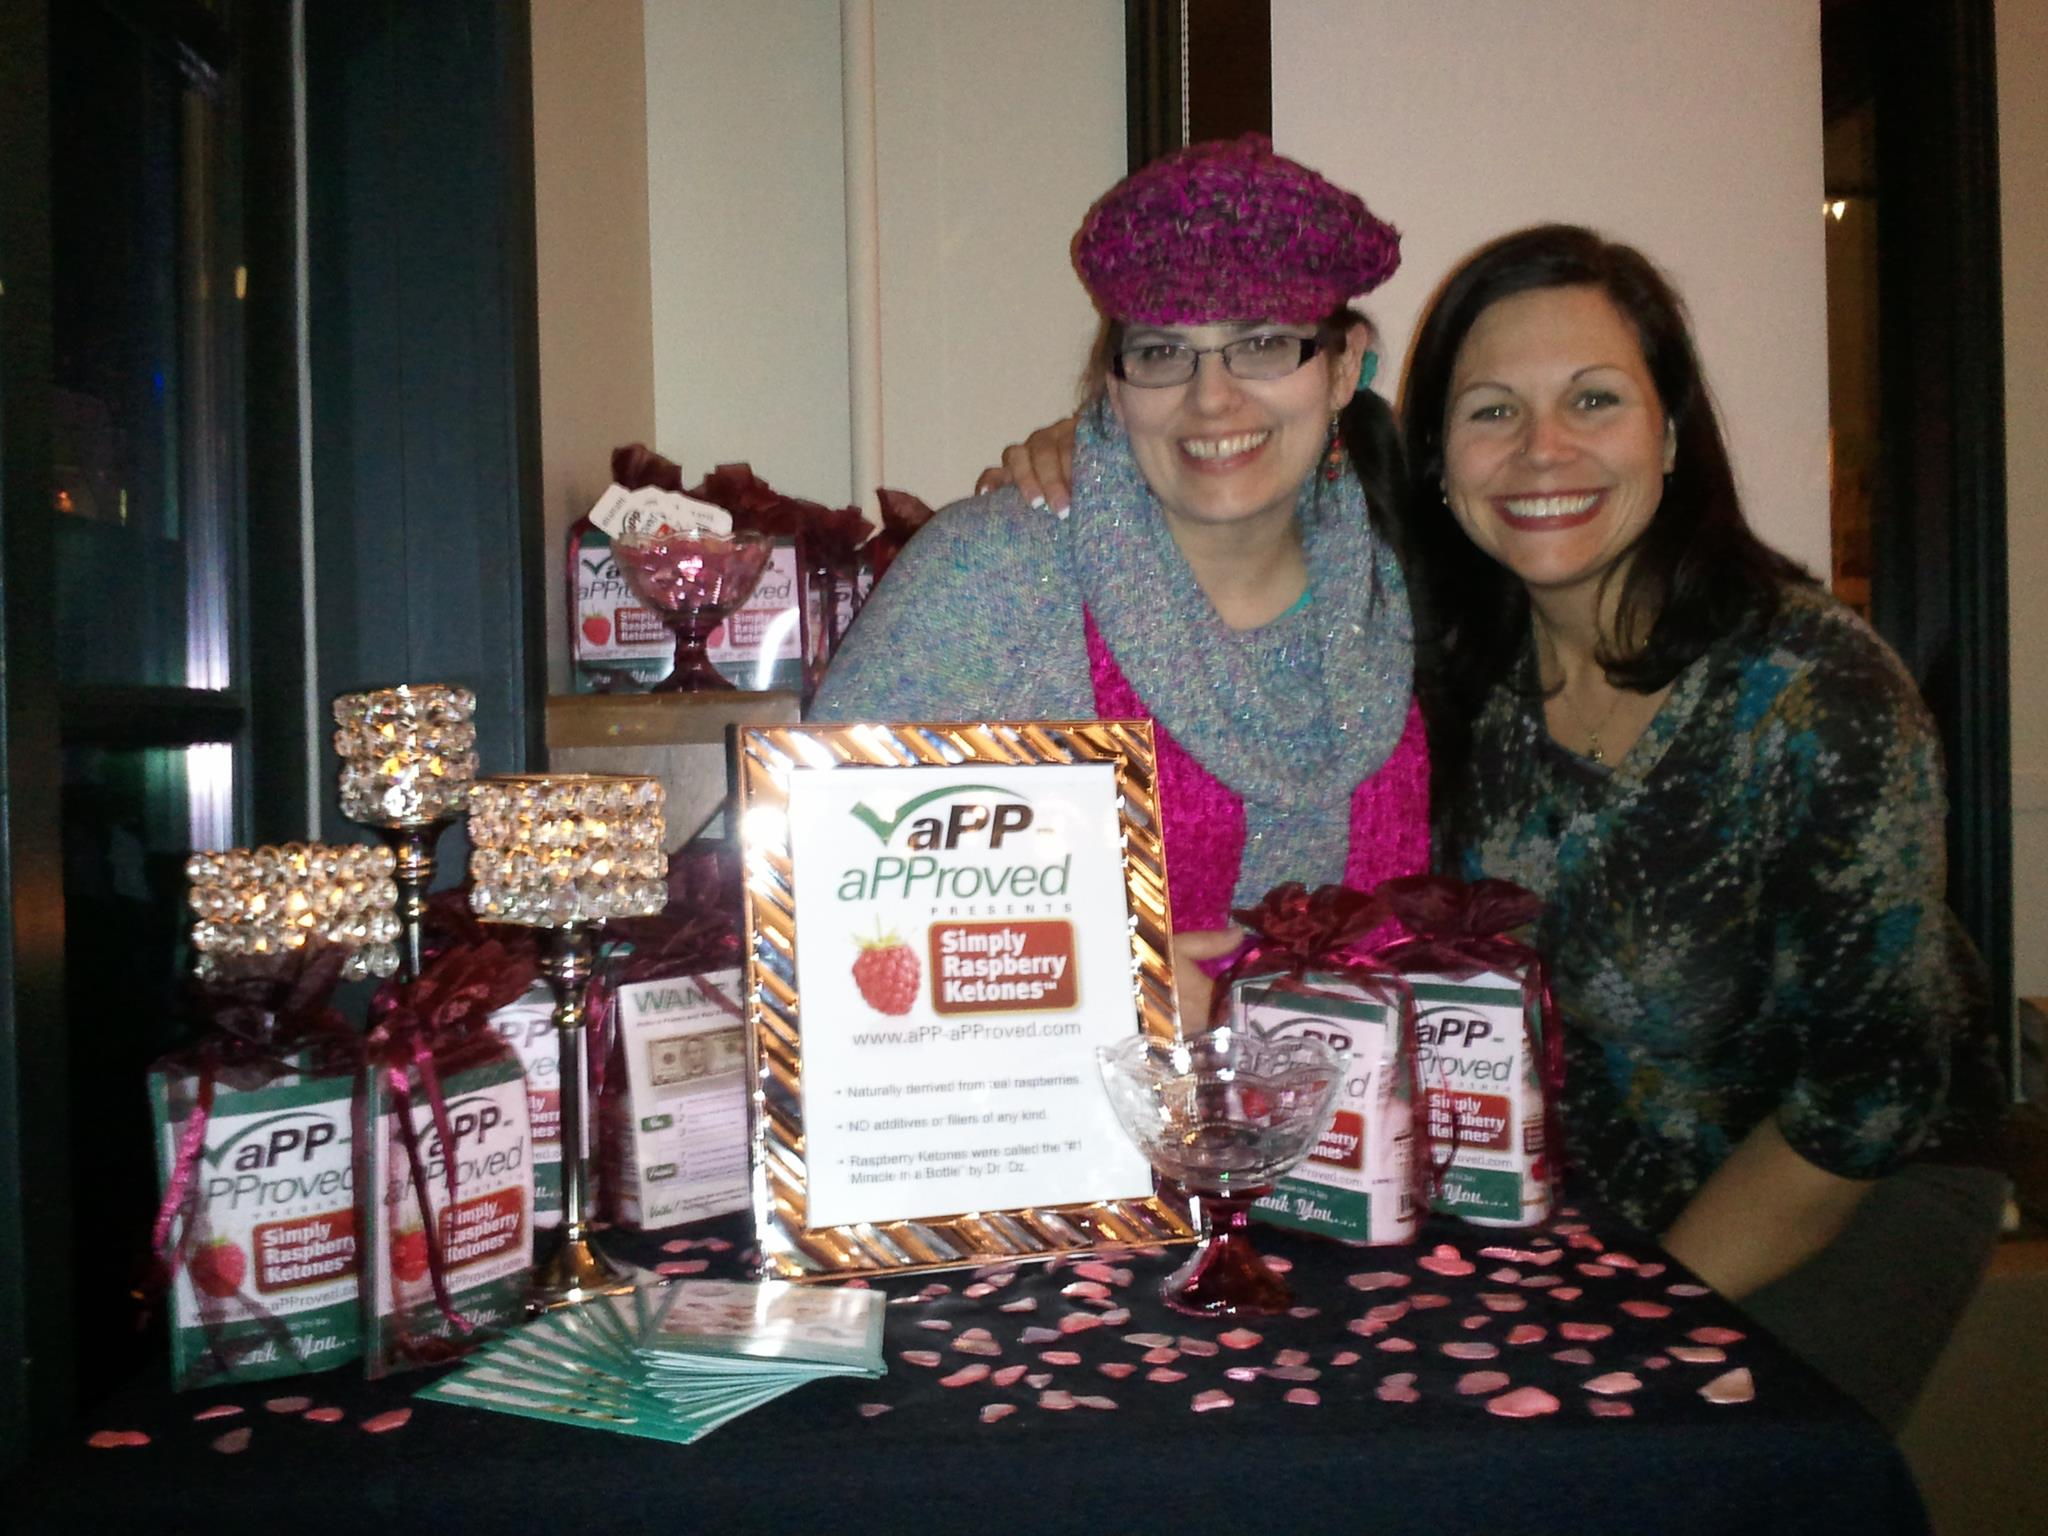 Geeks at Sundance Film Festival, ready to share Simply Raspberry Ketones. So excited to be here!